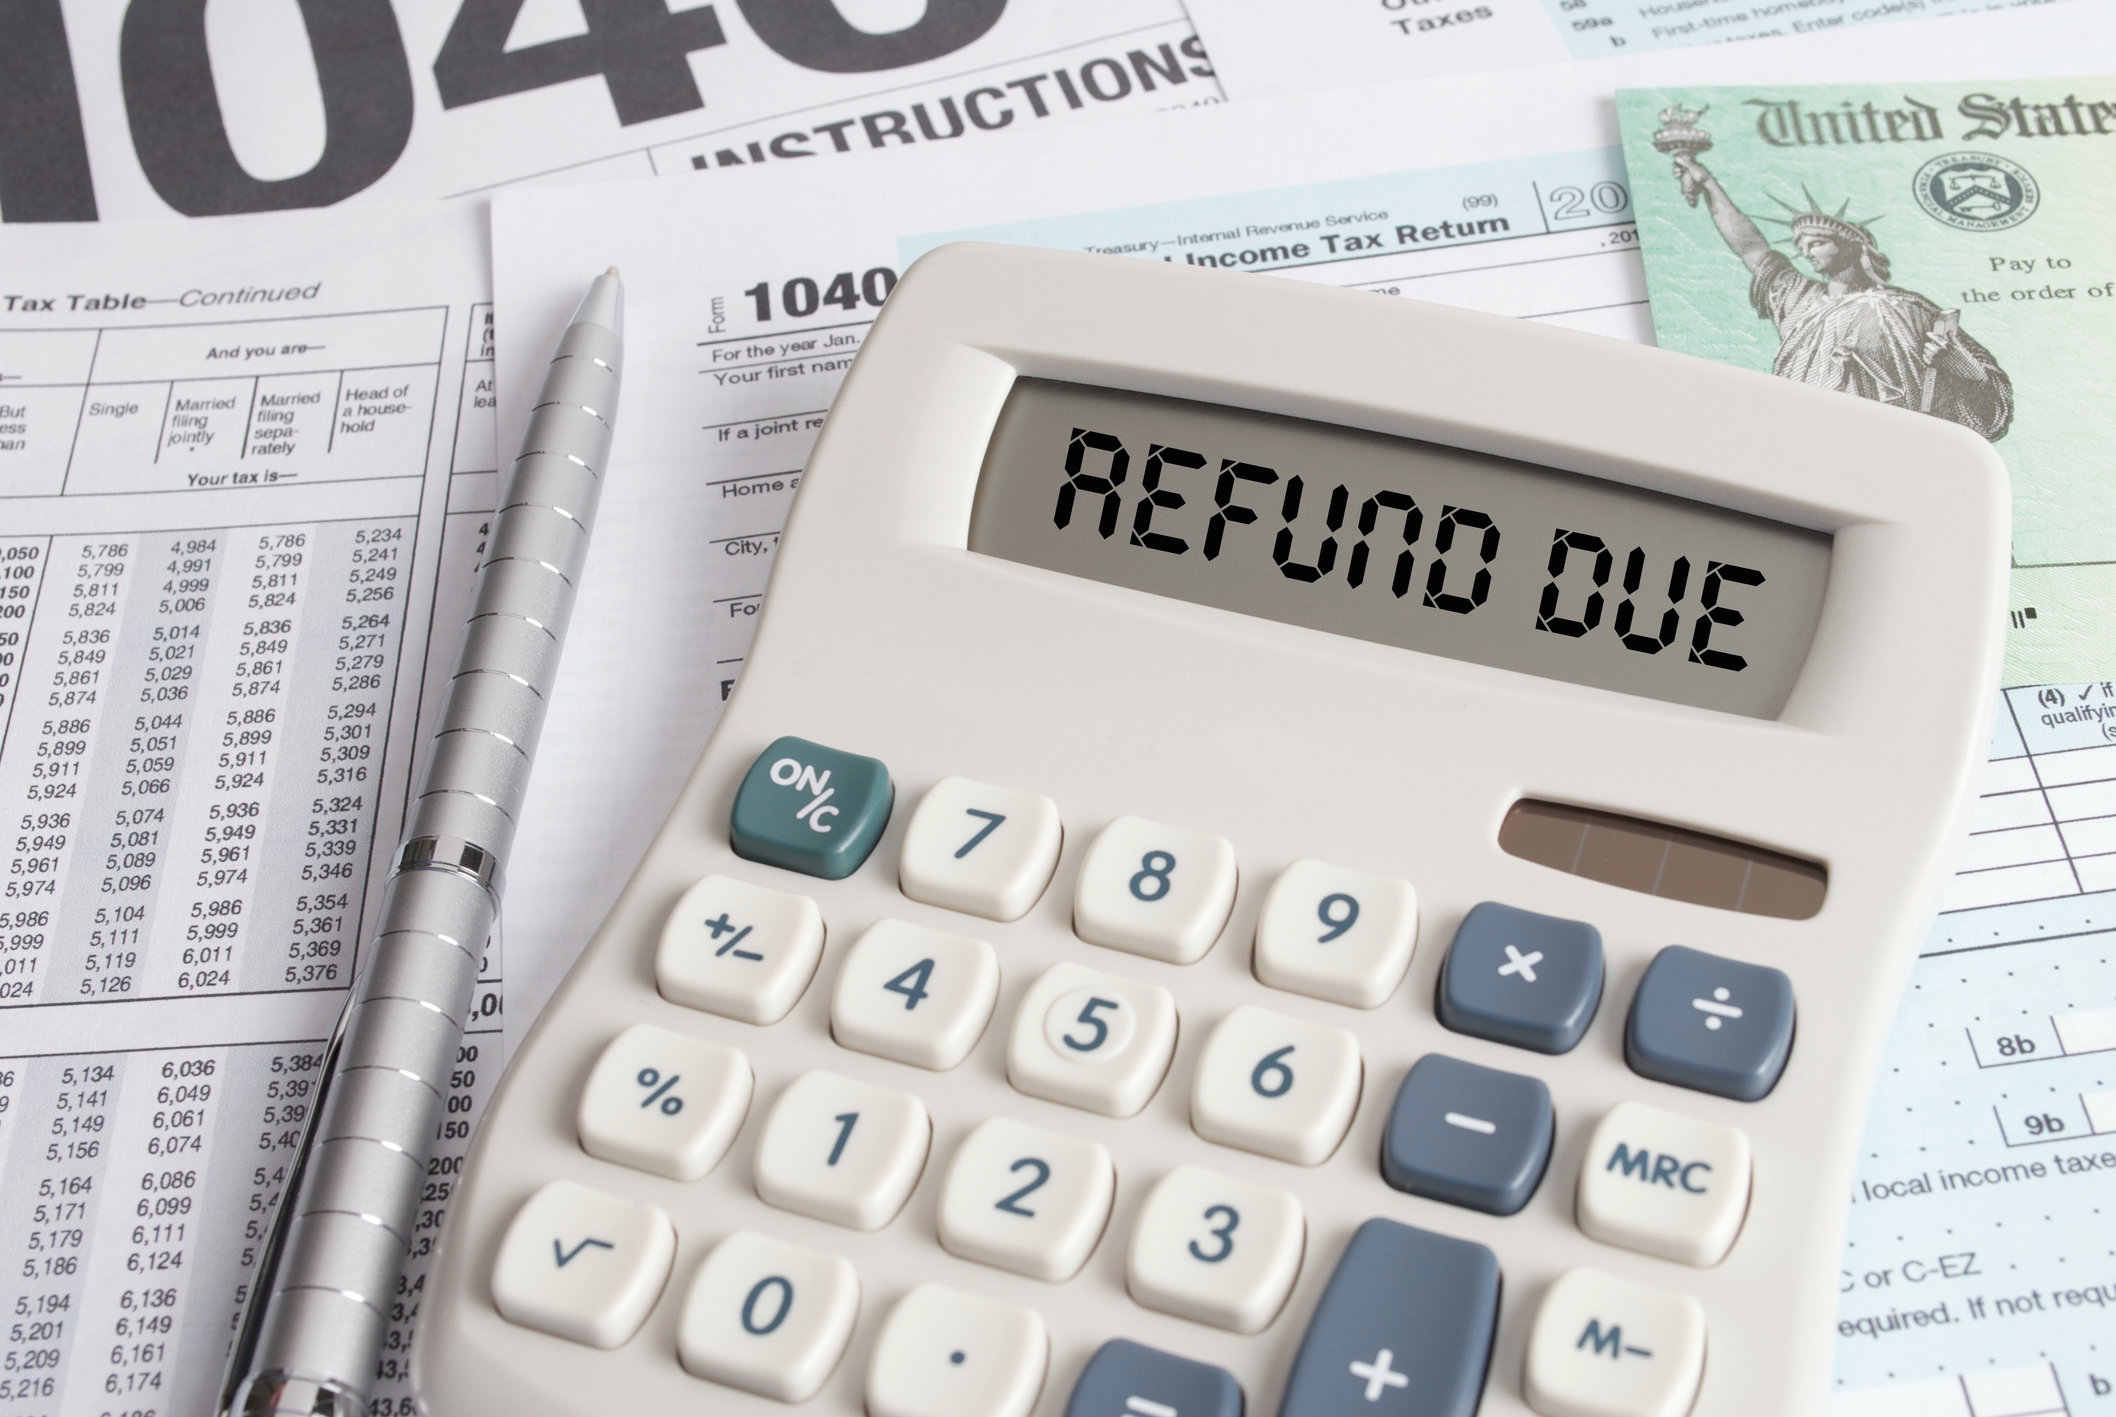 How to Estimate Your Tax Refund | LoveToKnow